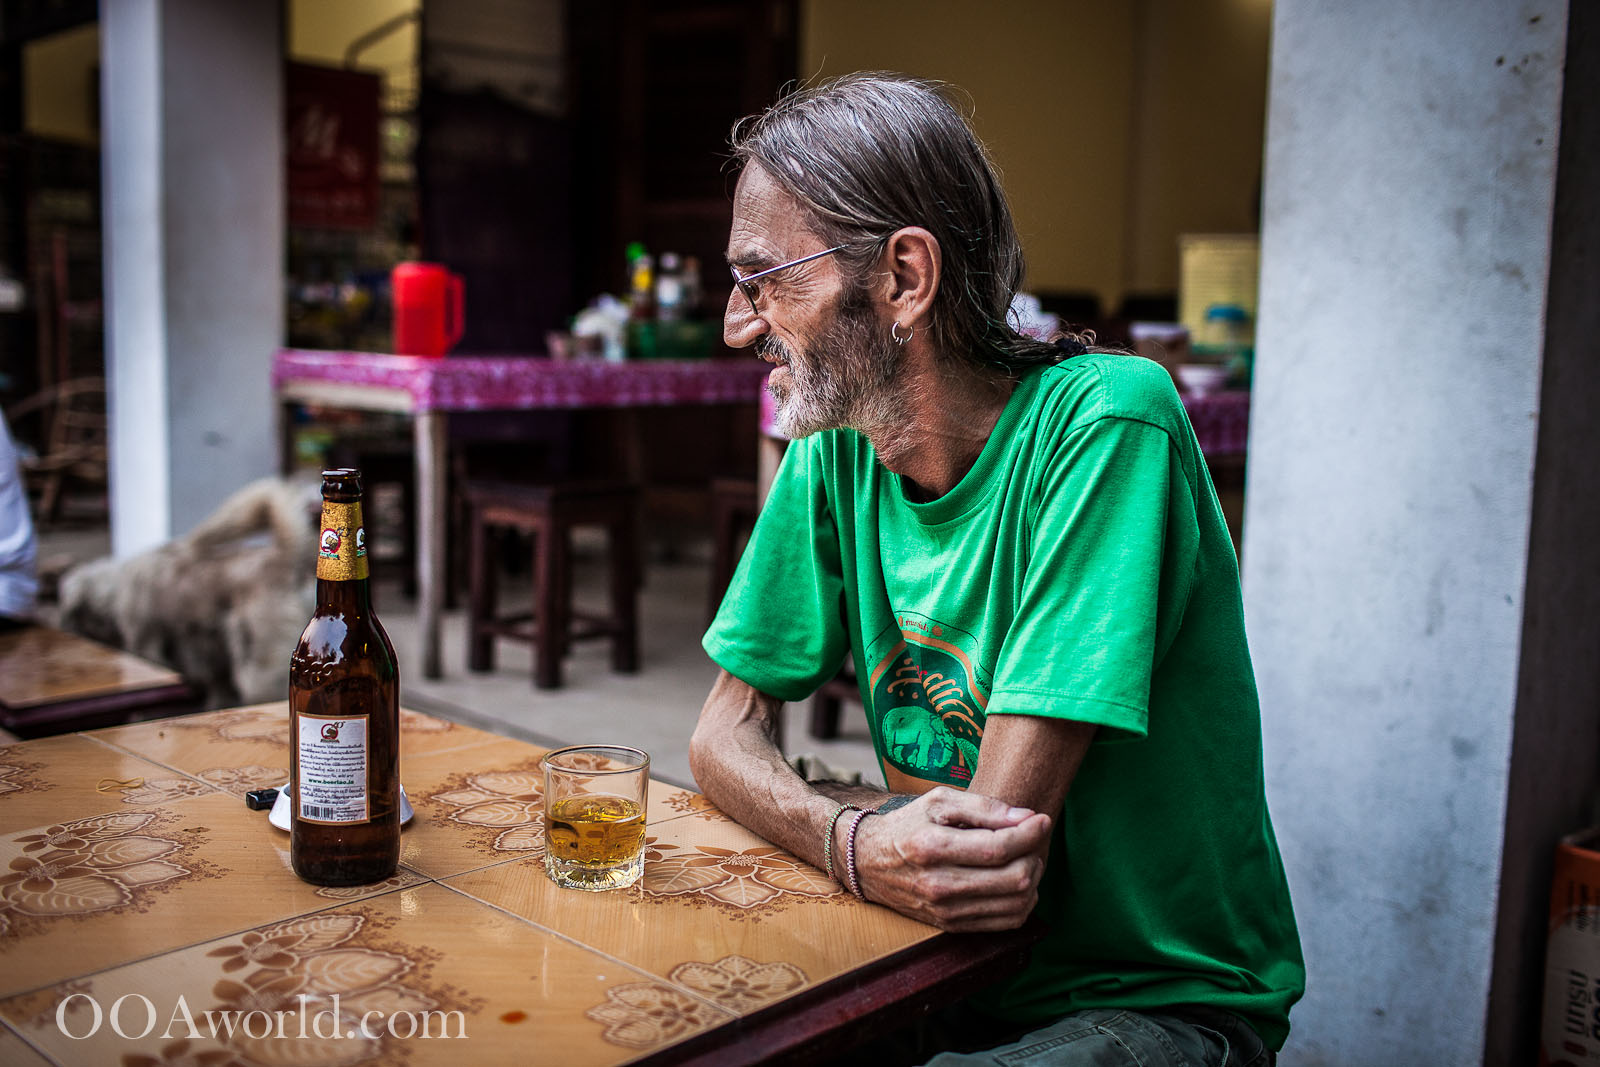 Luang Prabang Photo Portrait Expat Beer Photo Ooaworld